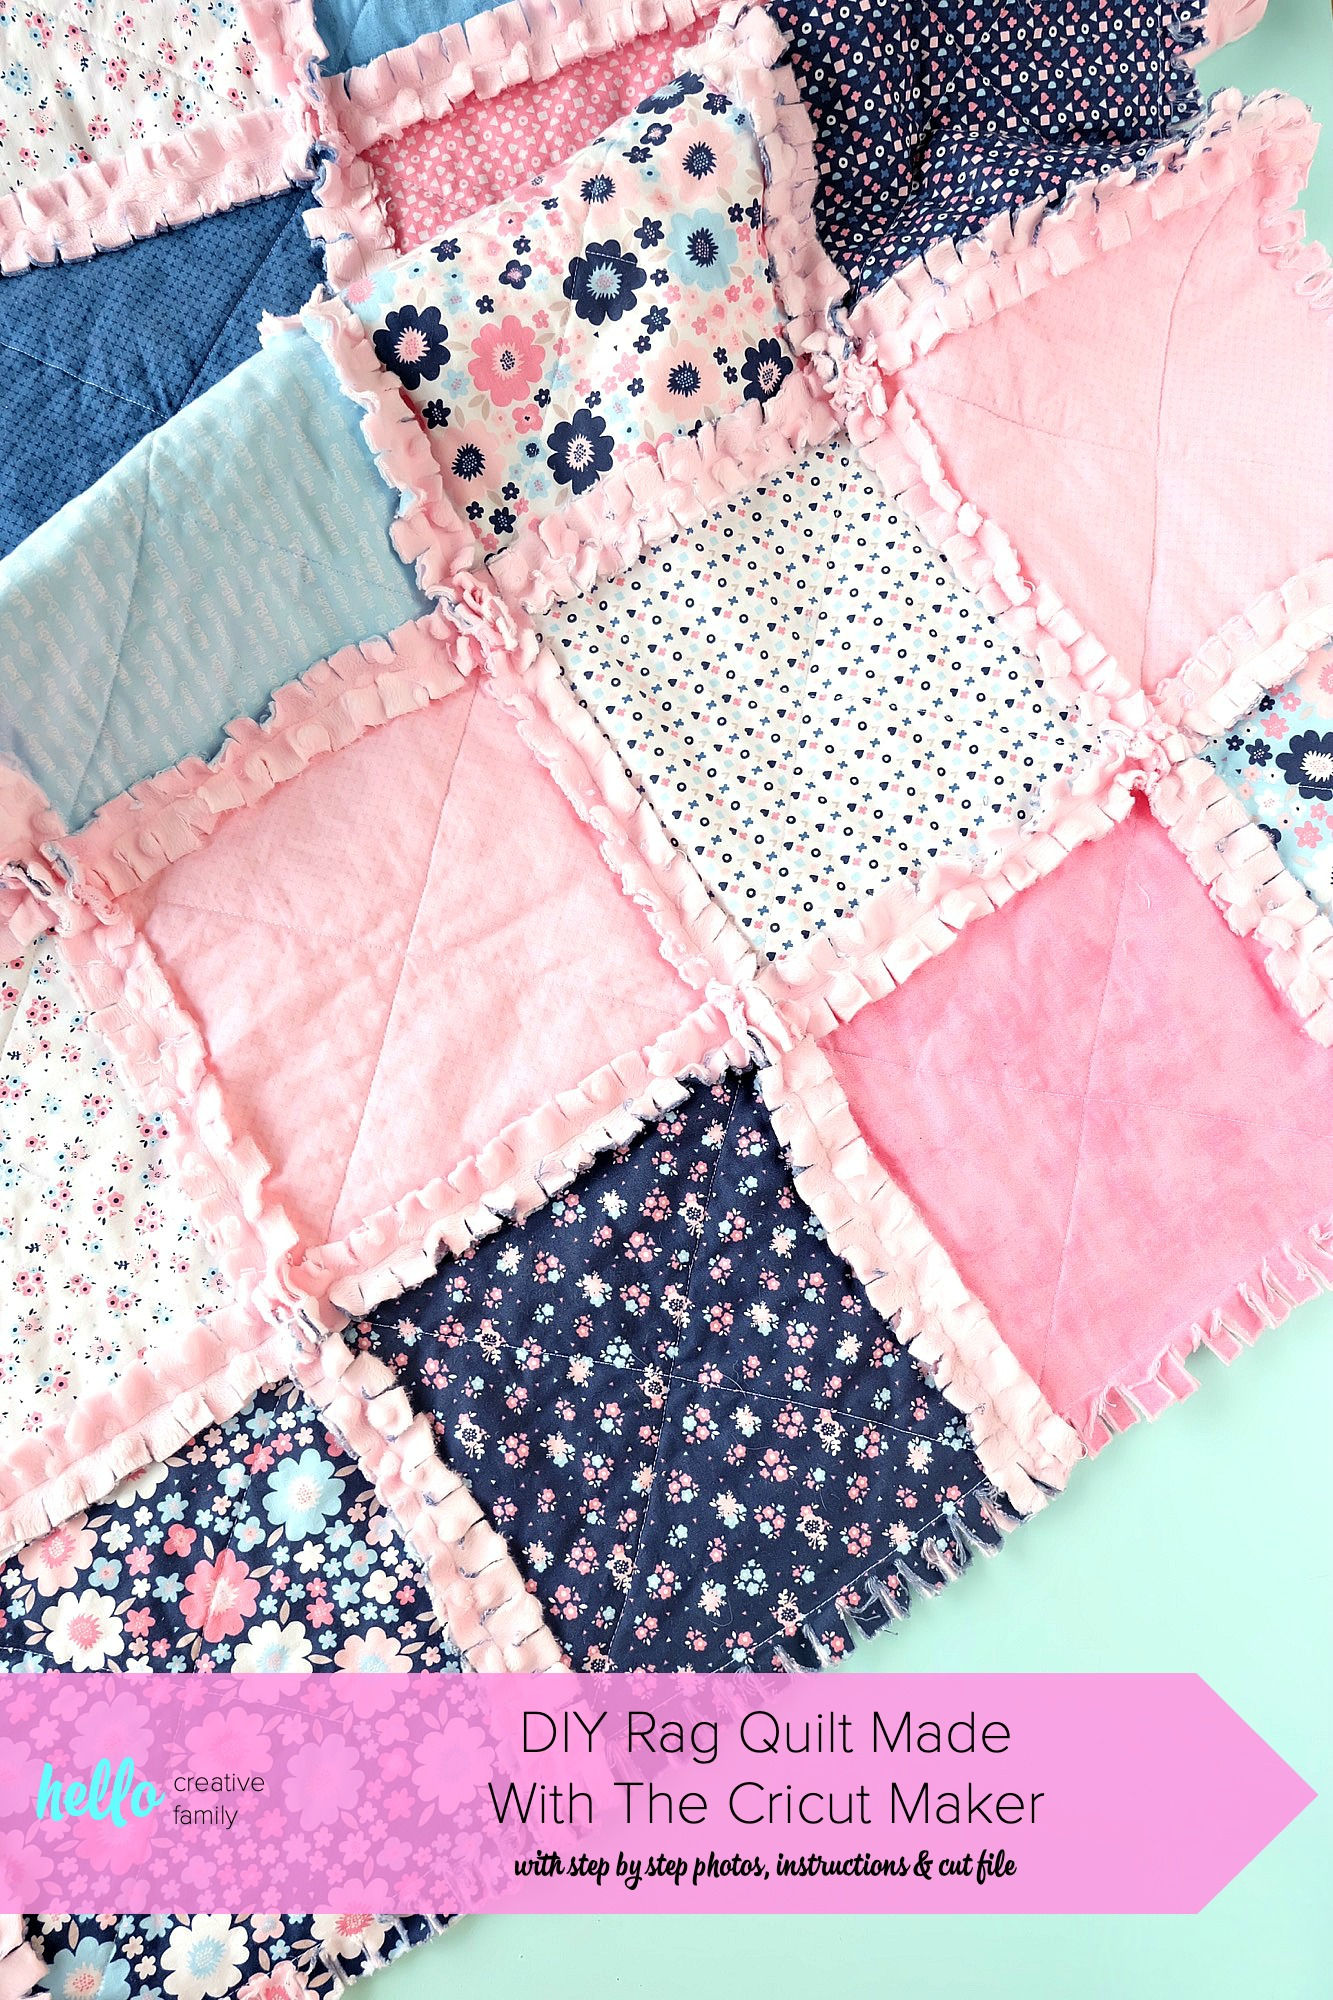 photo regarding Free Printable Doo Rag Patterns identify Do-it-yourself Rag Quilt Generated With The Cricut Producer With Move By means of Phase